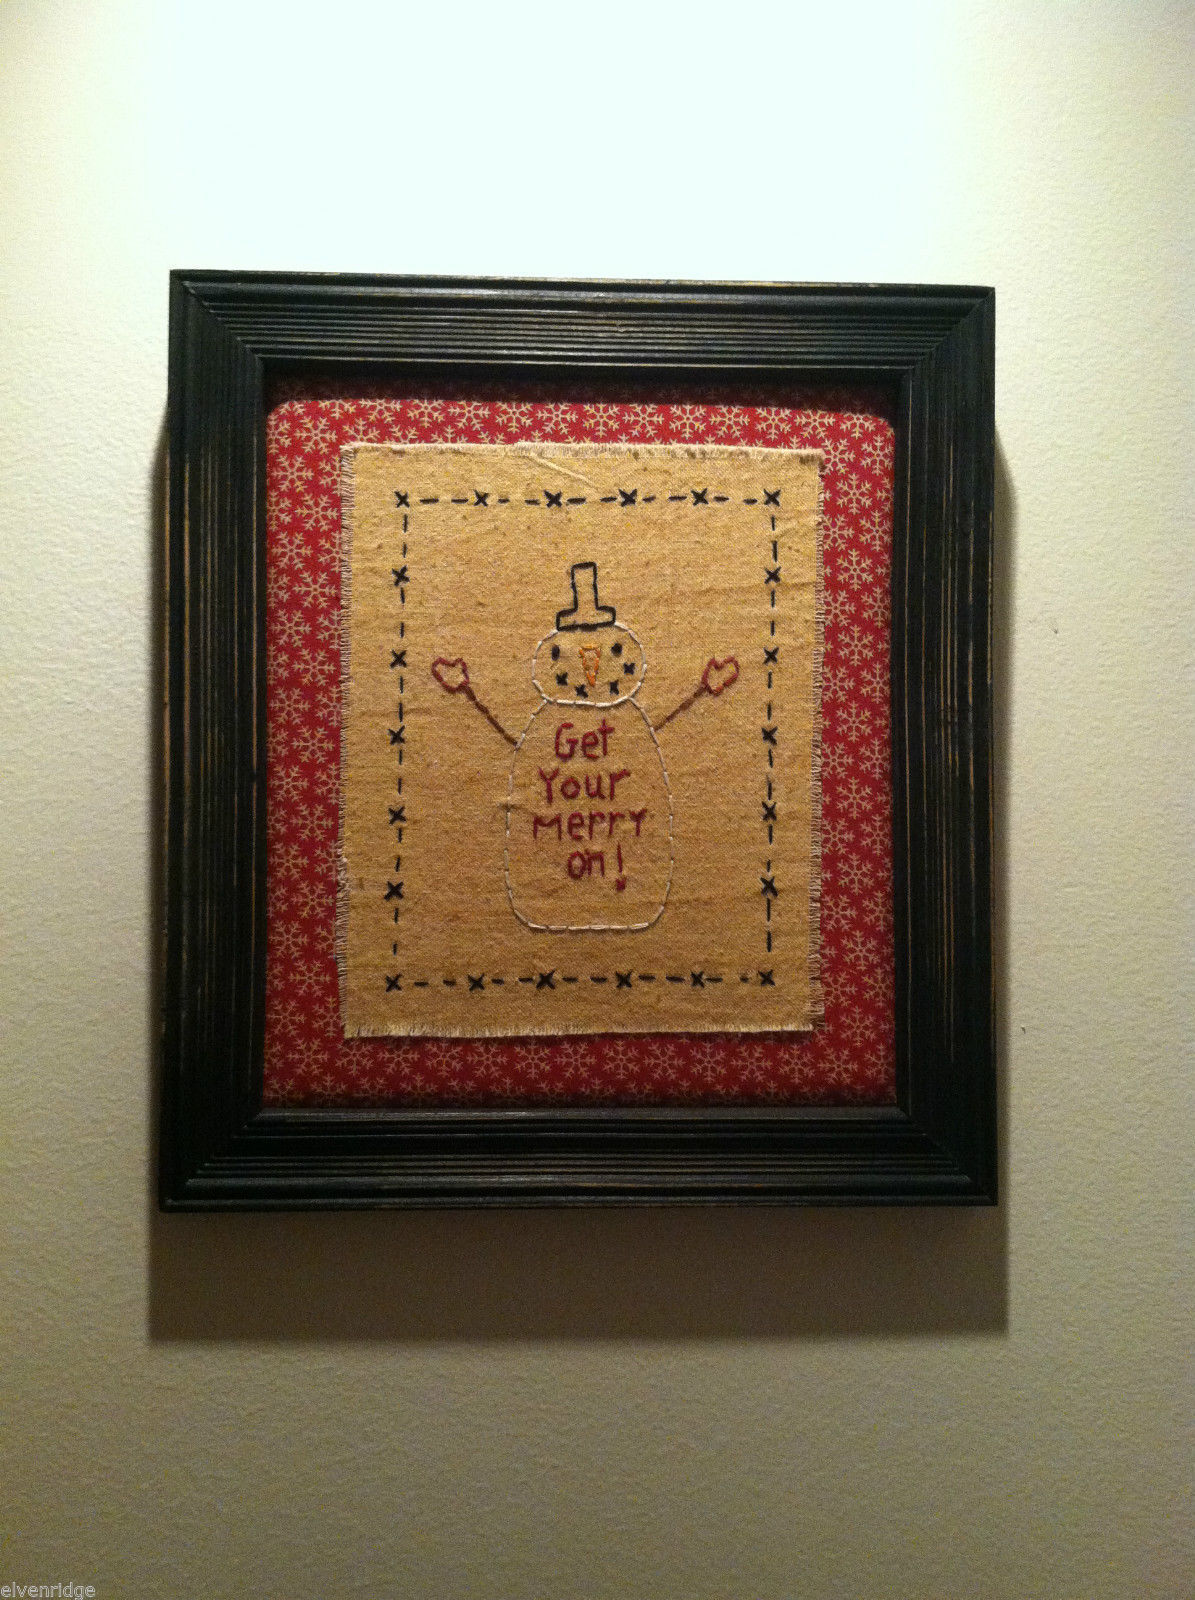 Hand Stitched Get Your Merry On ! Snowman Christmas Holiday Framed Picture